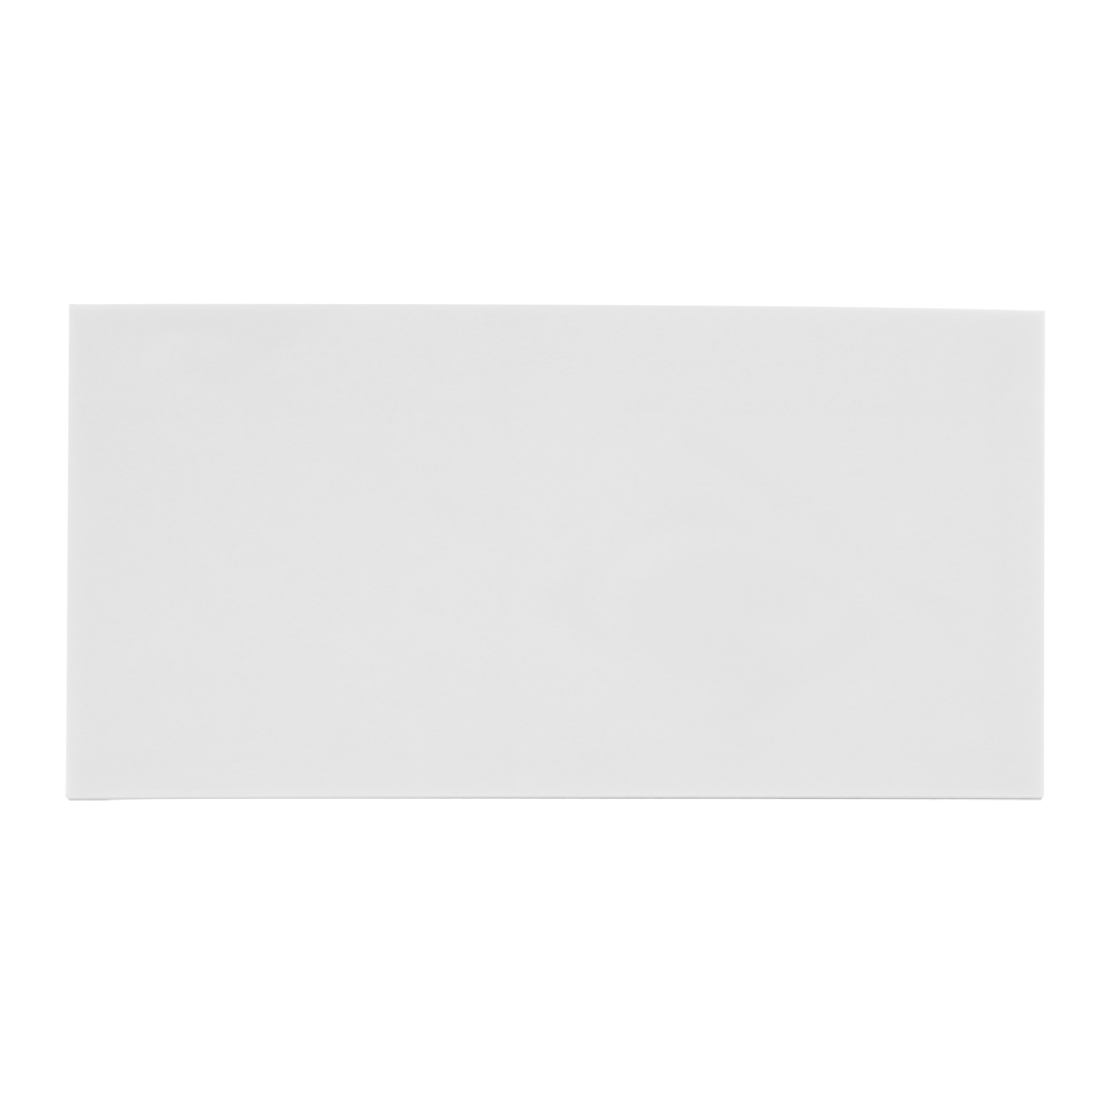 3mm White Plastic Acrylic Plexiglass Sheet A4 Size 210mm x 297mm